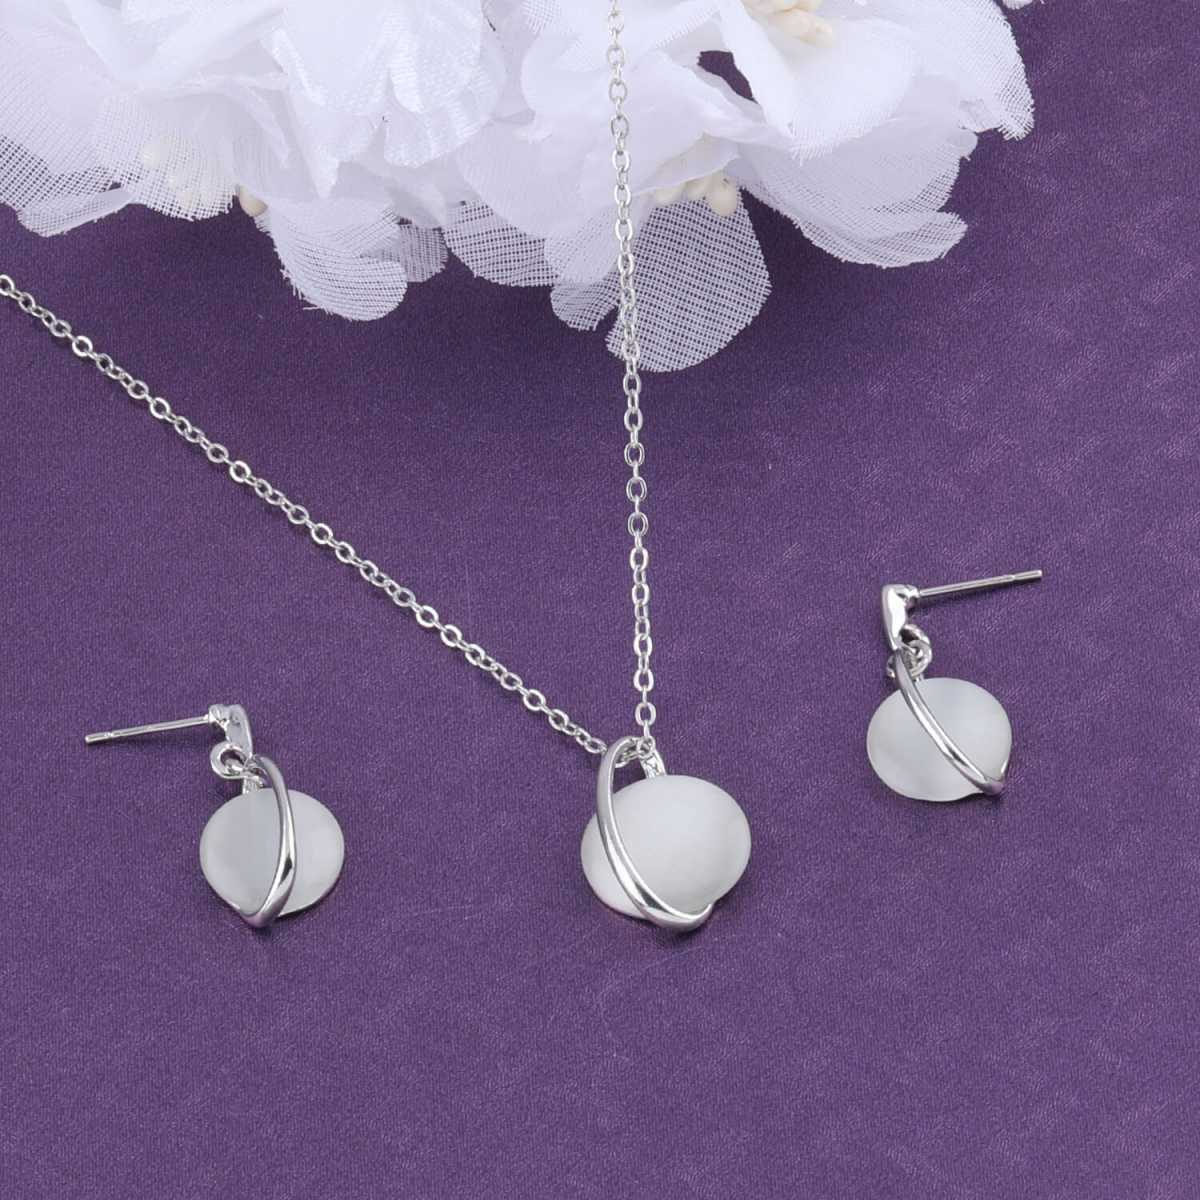 SILVER SHINE Stylish Delicate Silver Plated  Pendant Set For Women Girl